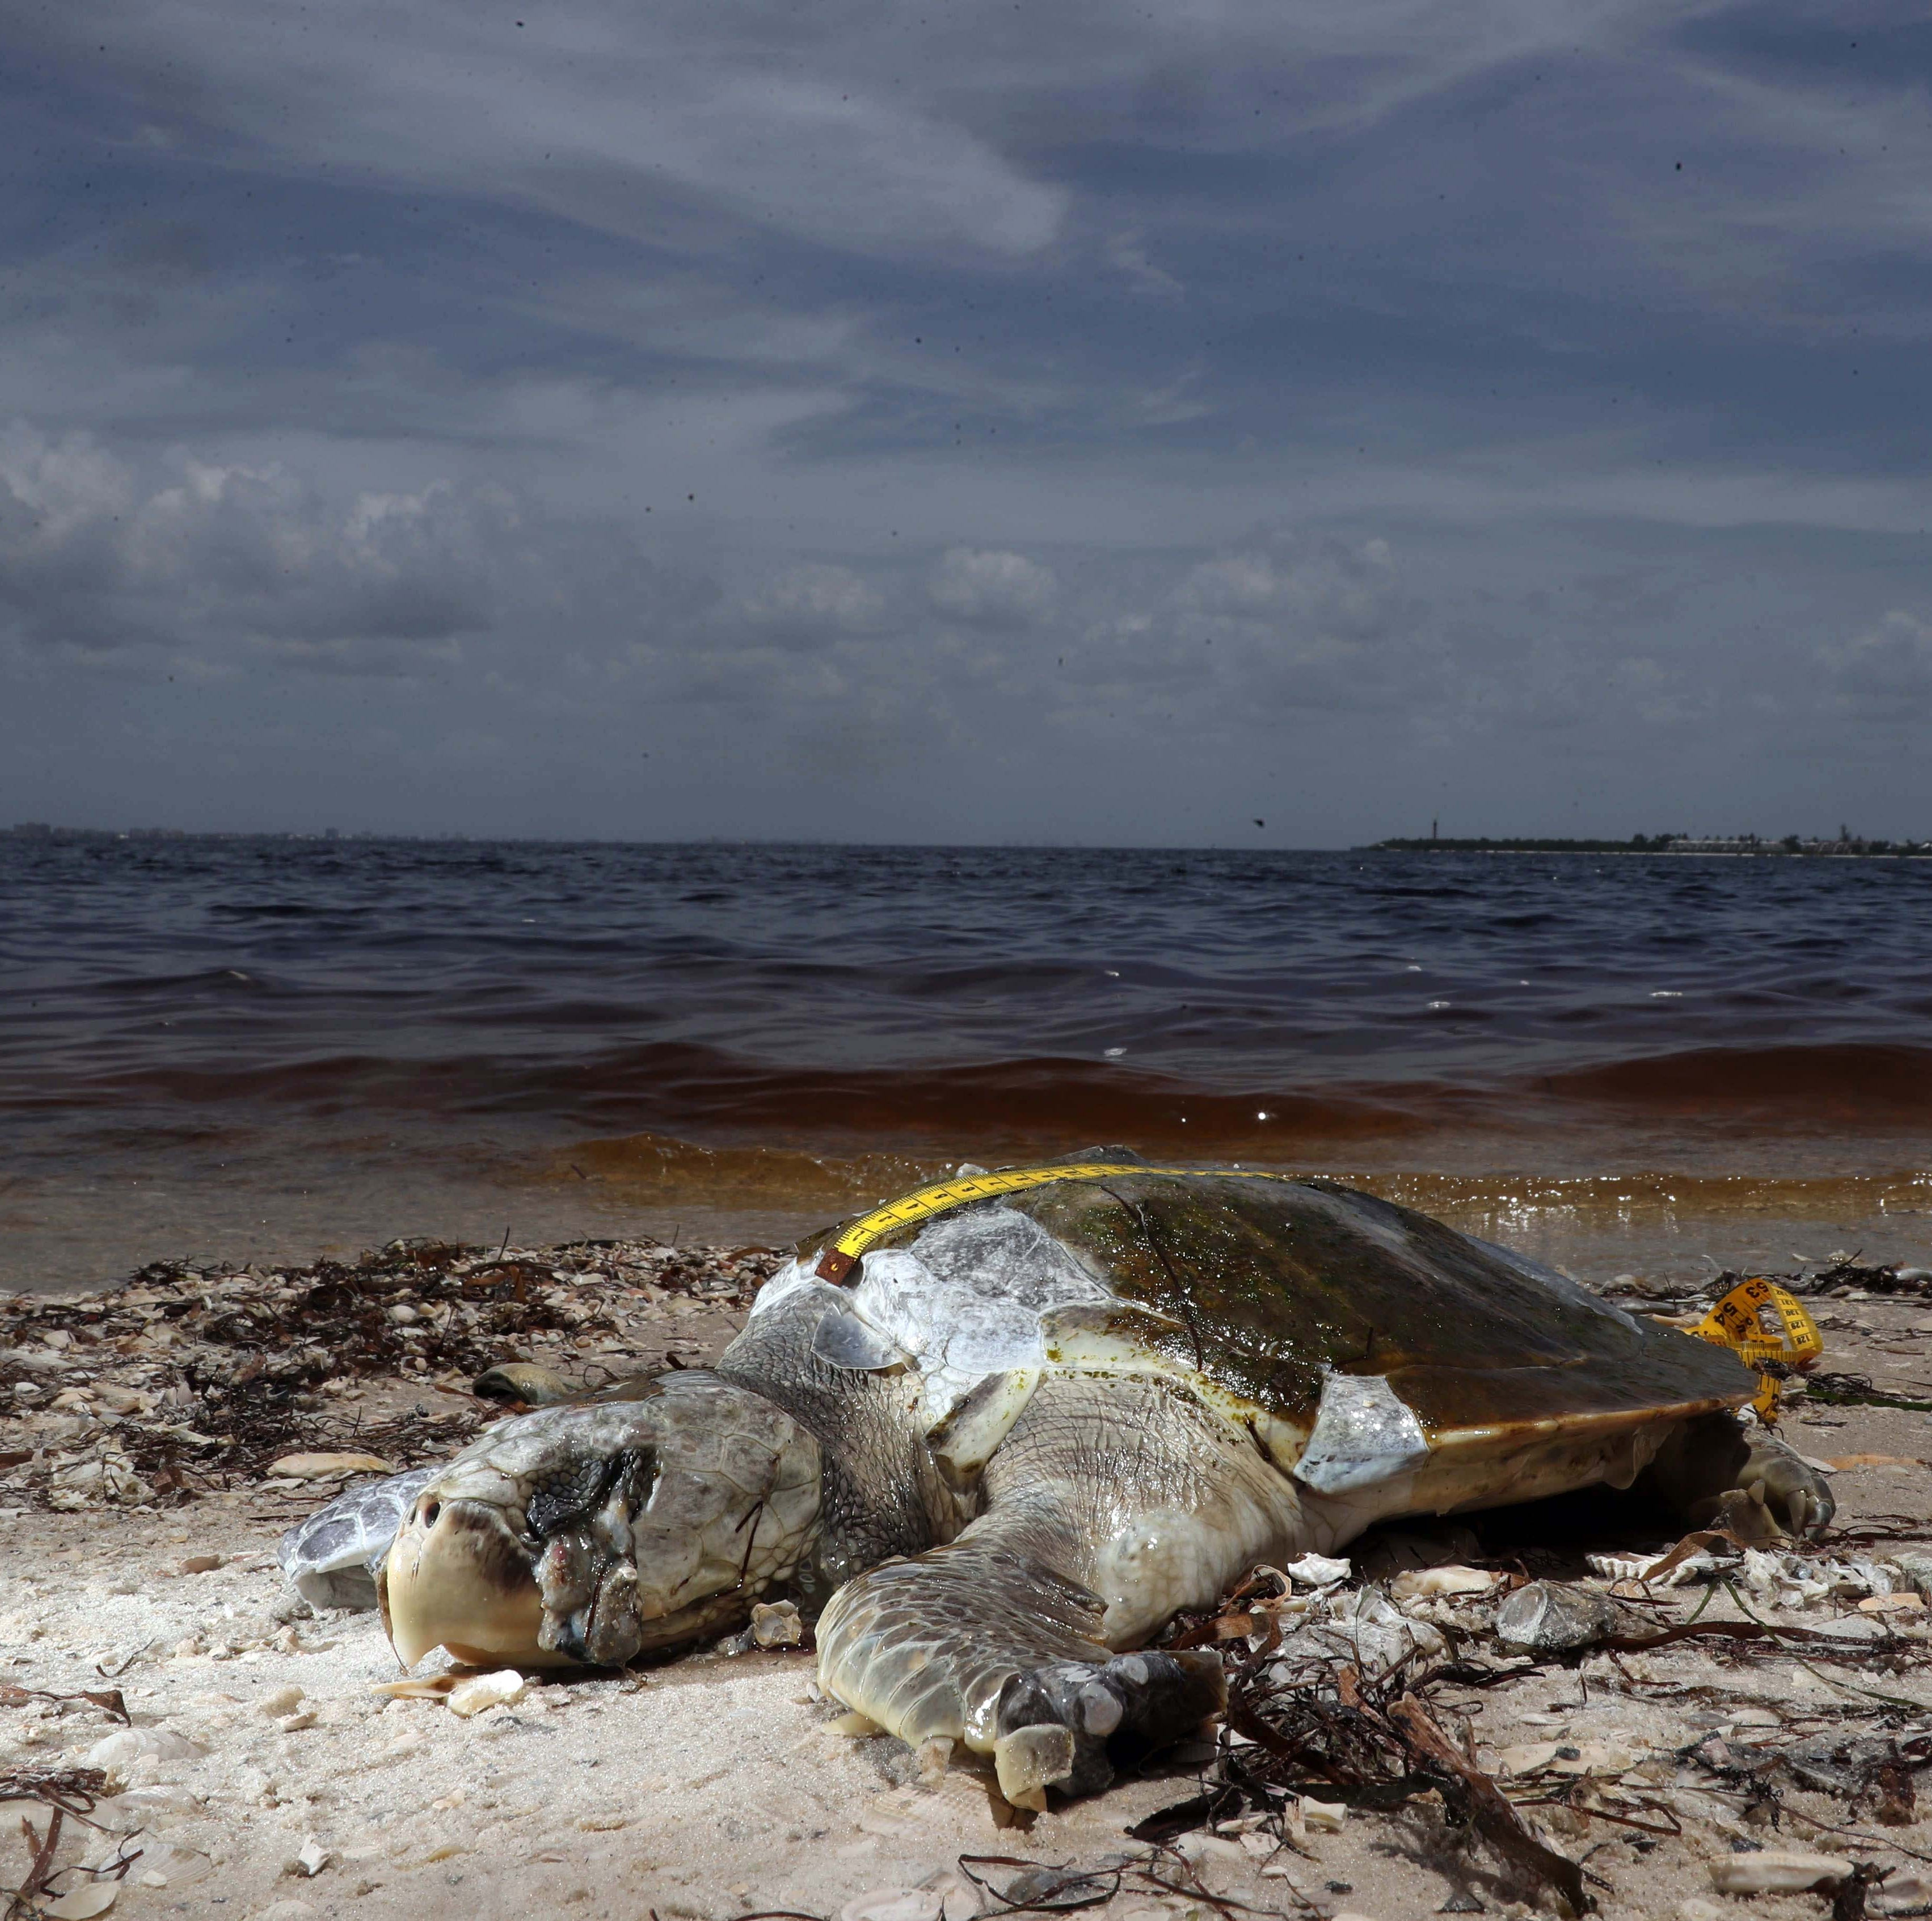 Red tide rising: Victims powerless when government fails | Opinion